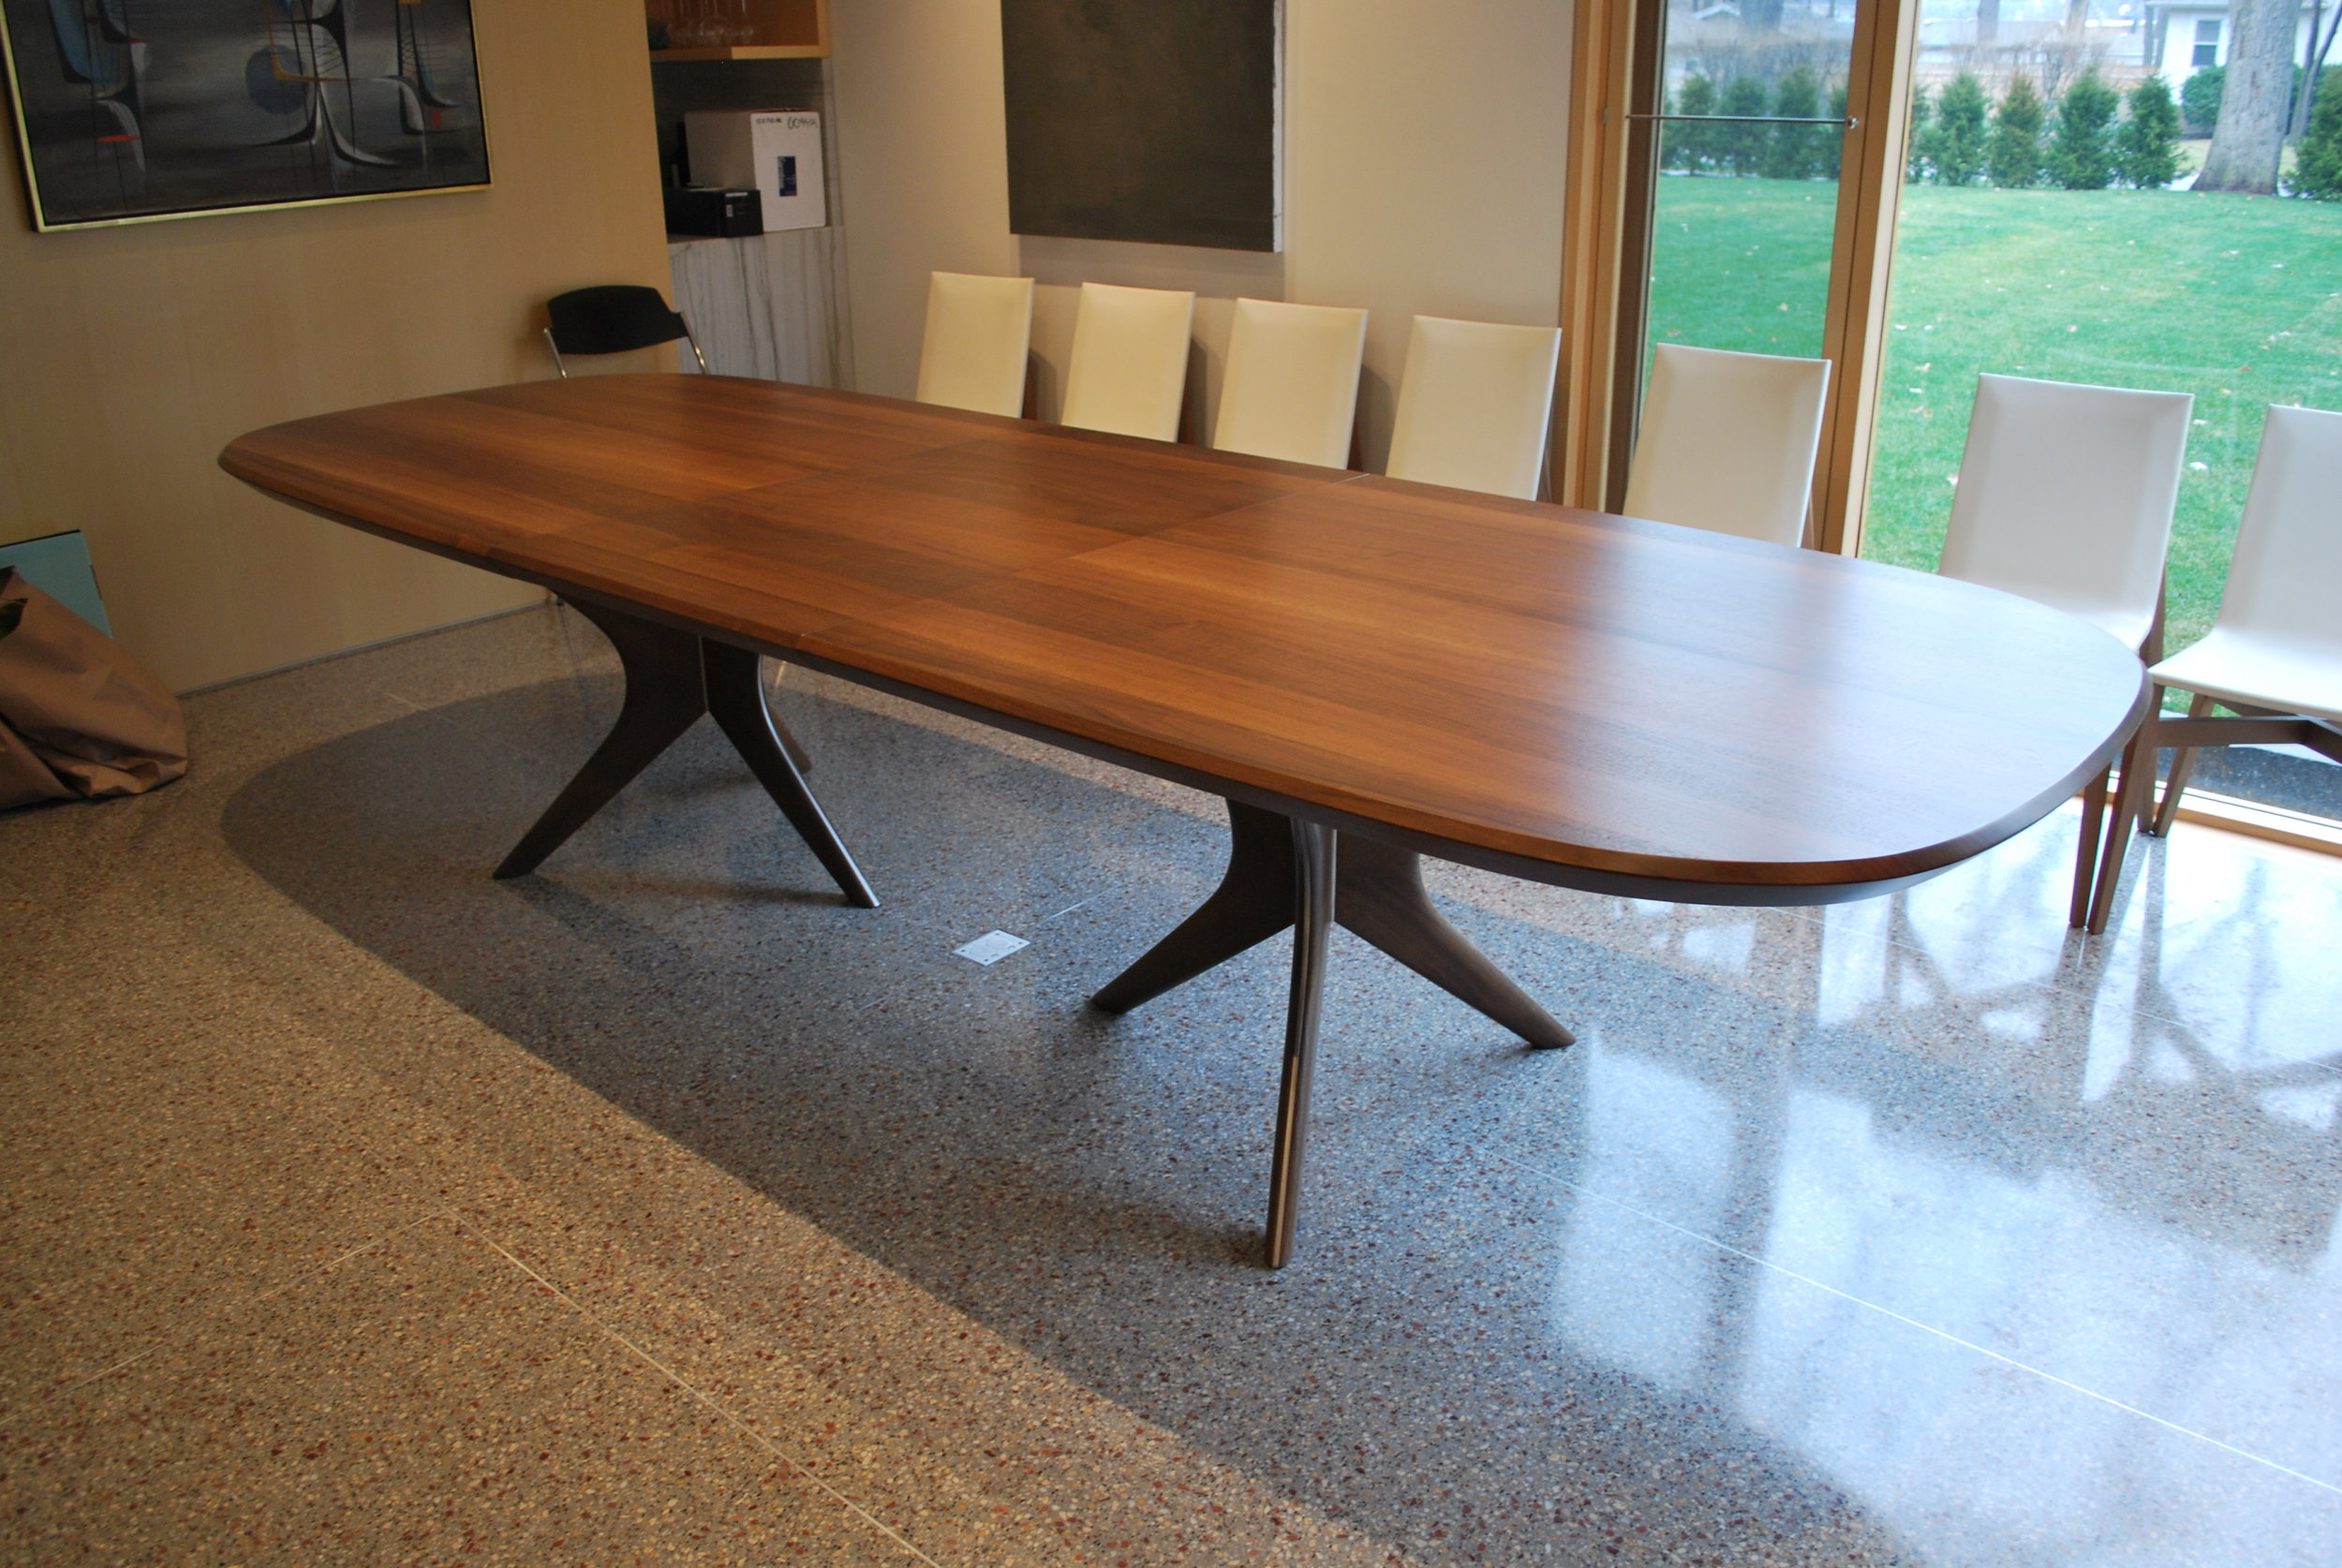 Double Tripod Extension Table   Solid black walnut dining table with stainless steel accents on pedestal bases.